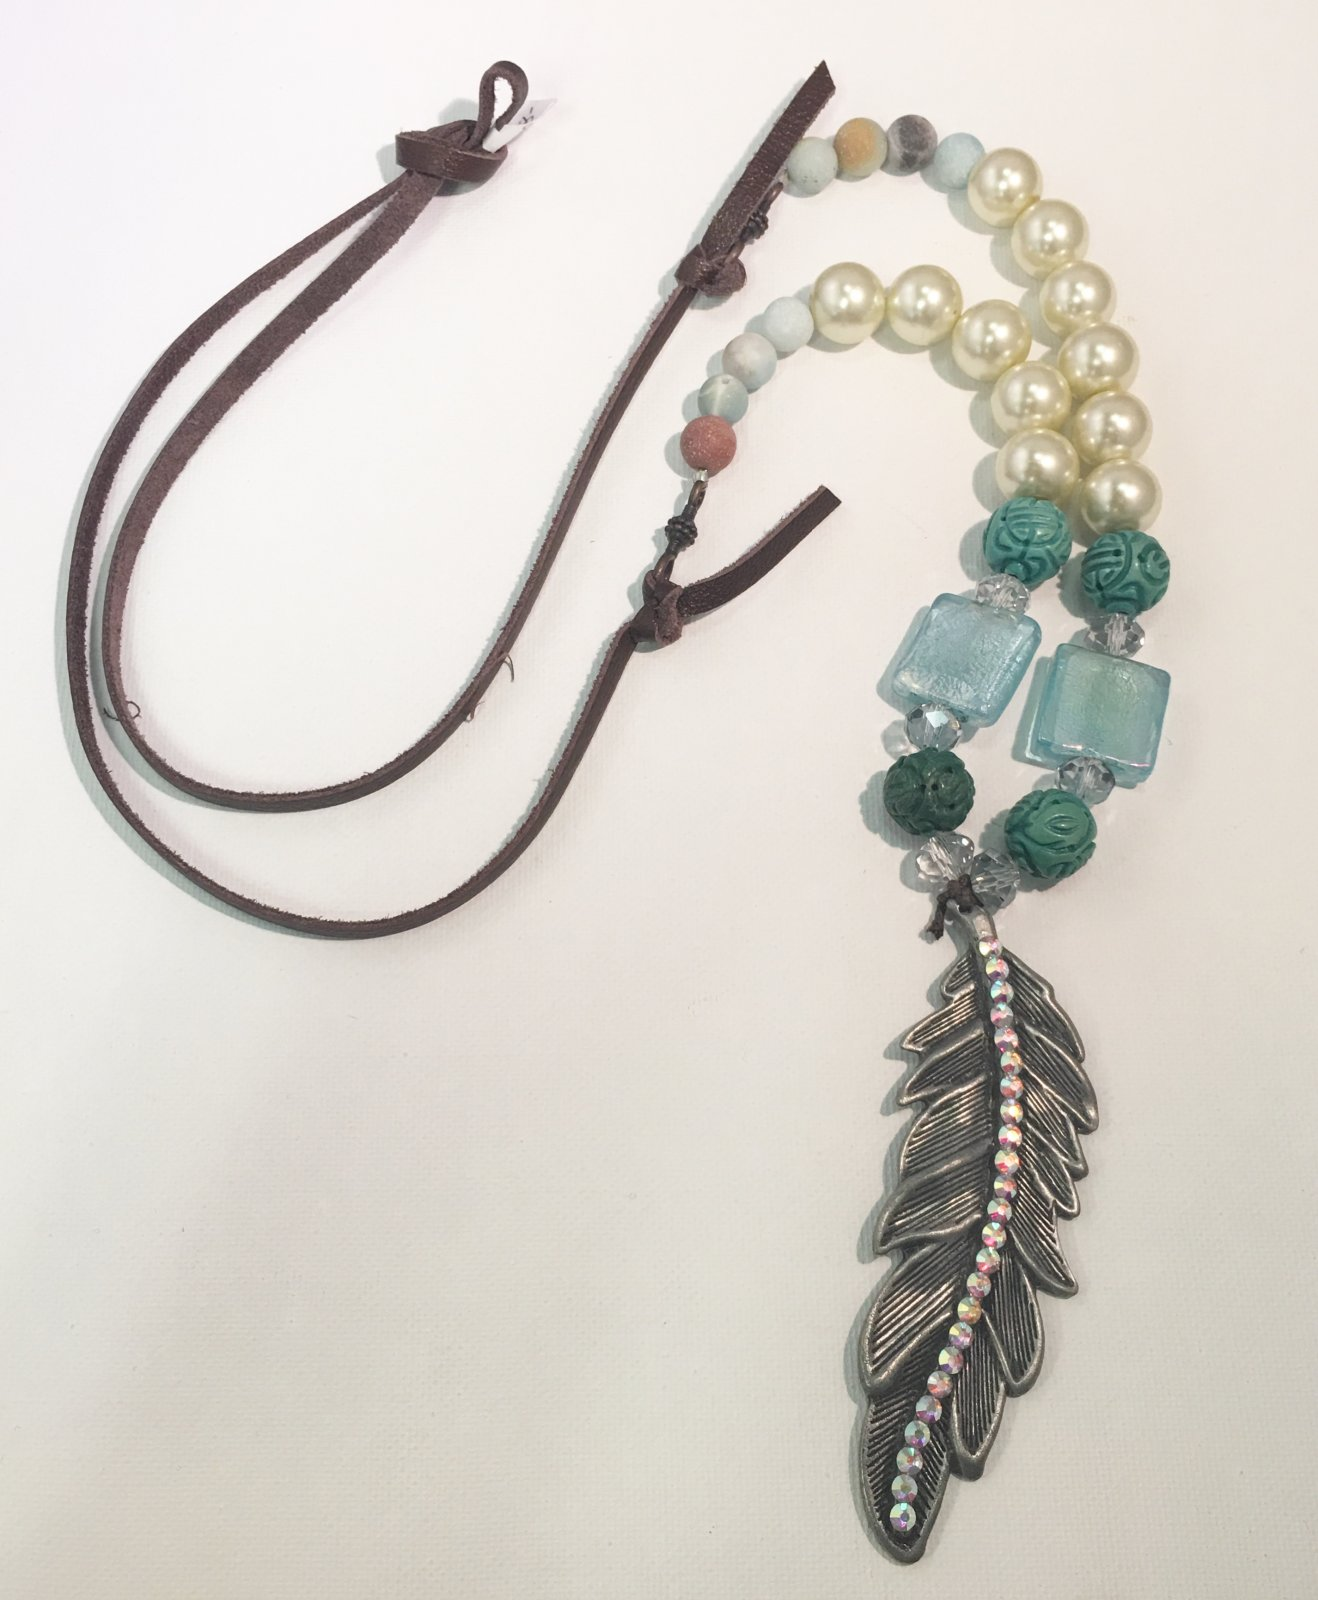 Feather Long Necklace With Leather Strap and Aqua Beads